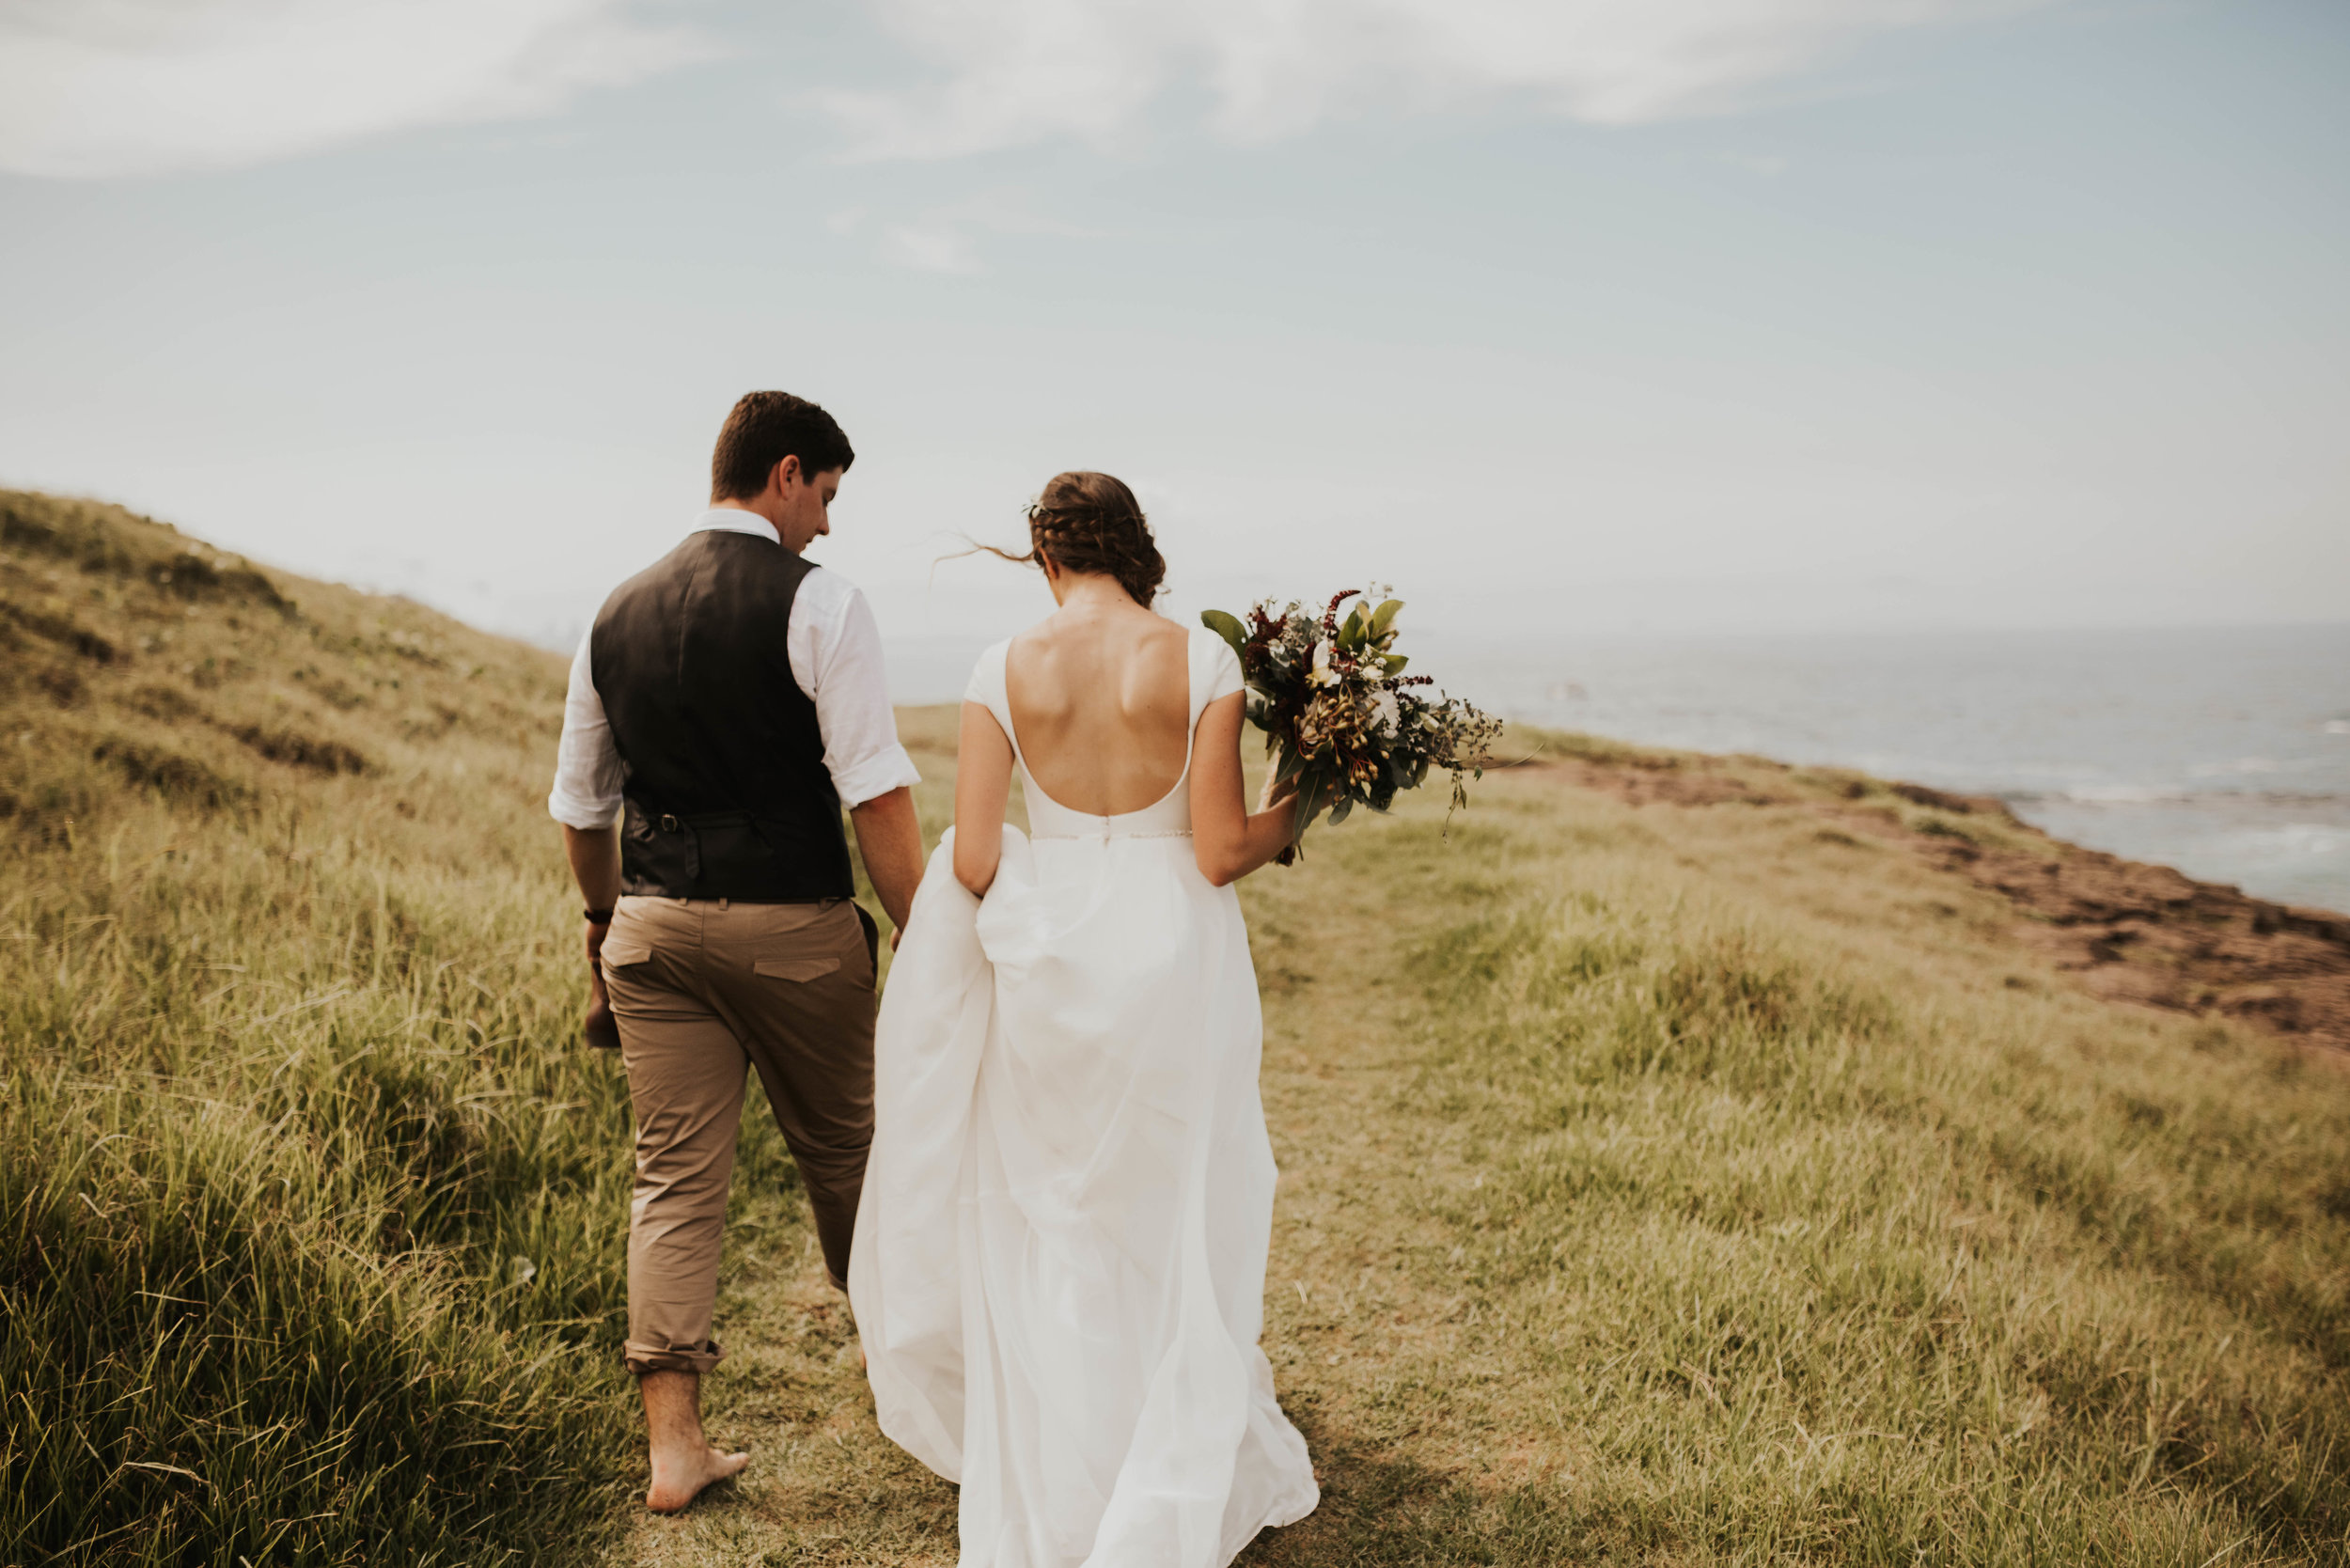 Dreamy DIY Wedding | Shellharbour, NSW Australia